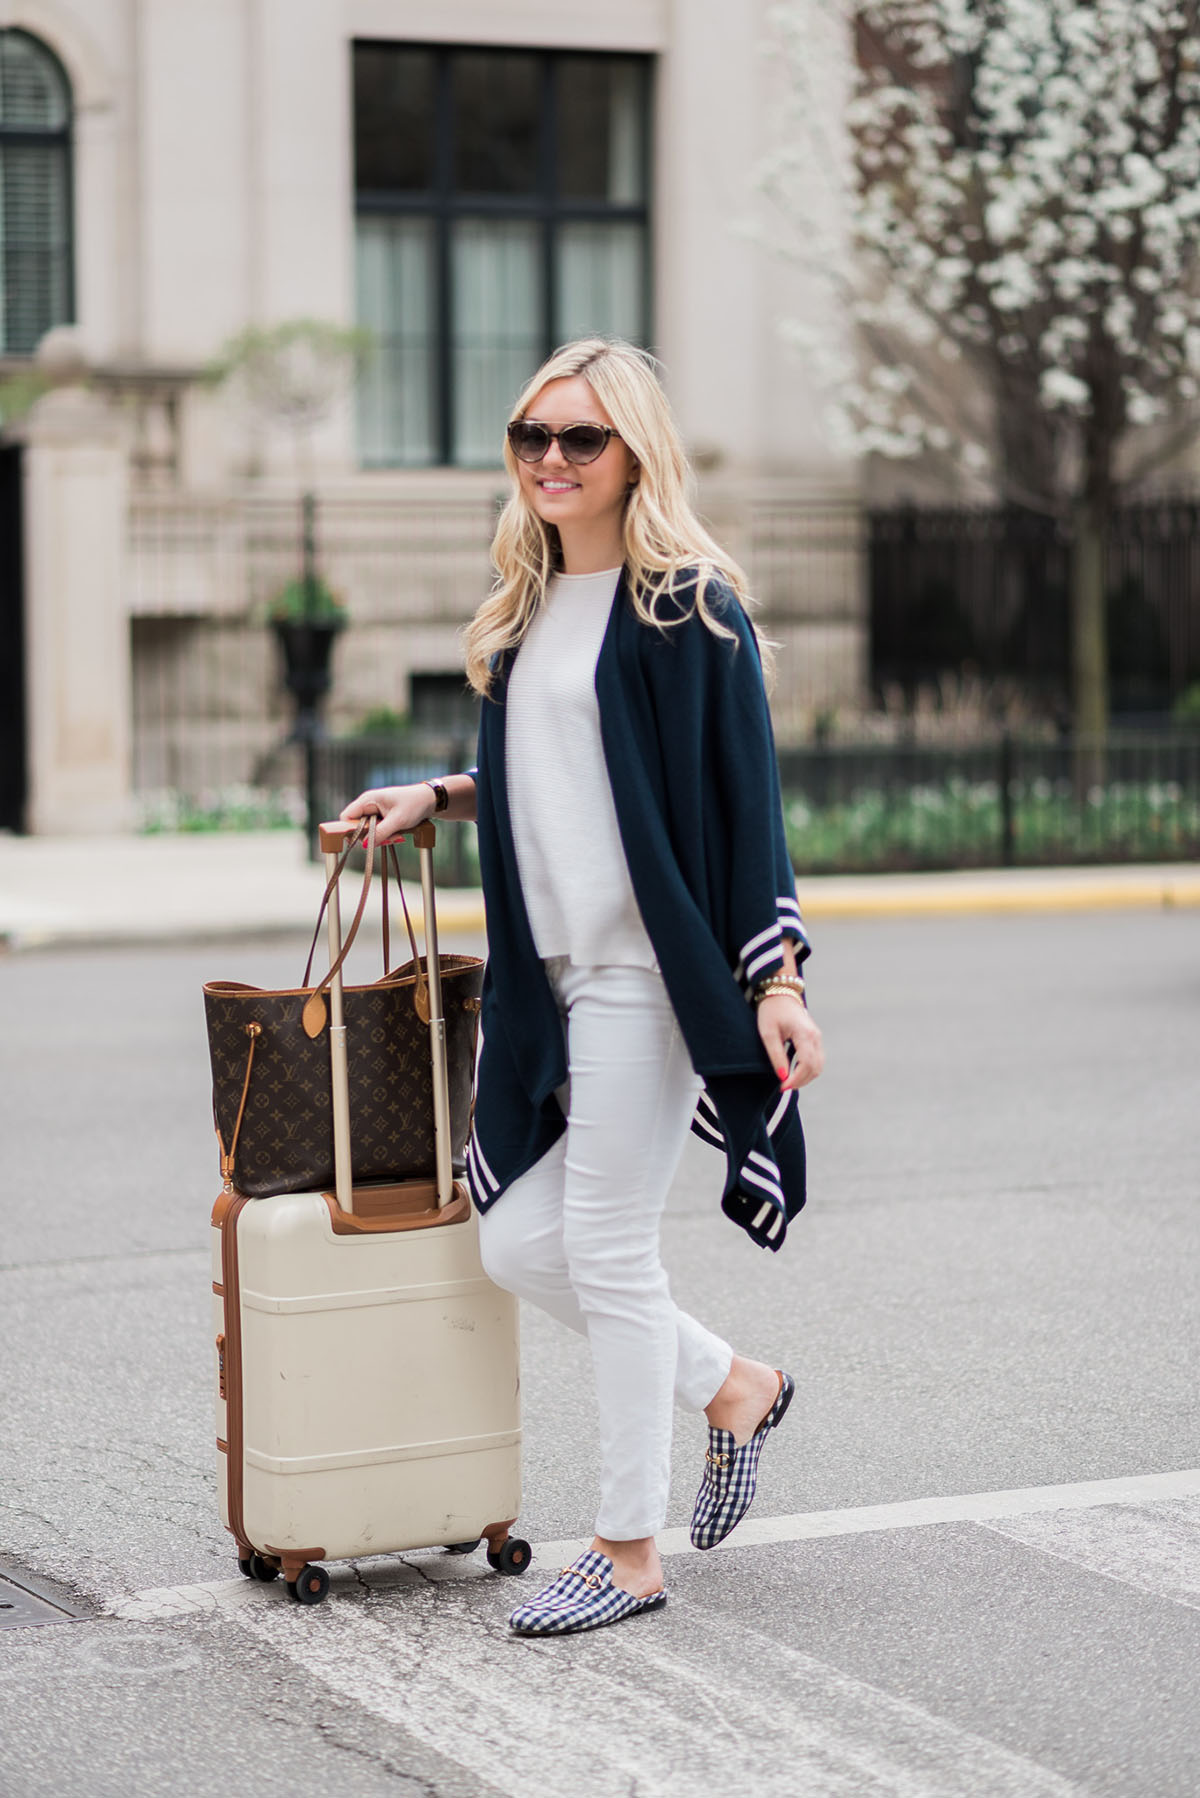 Best Outfit: A Fashionable Travel Outfit That's Still Comfortable